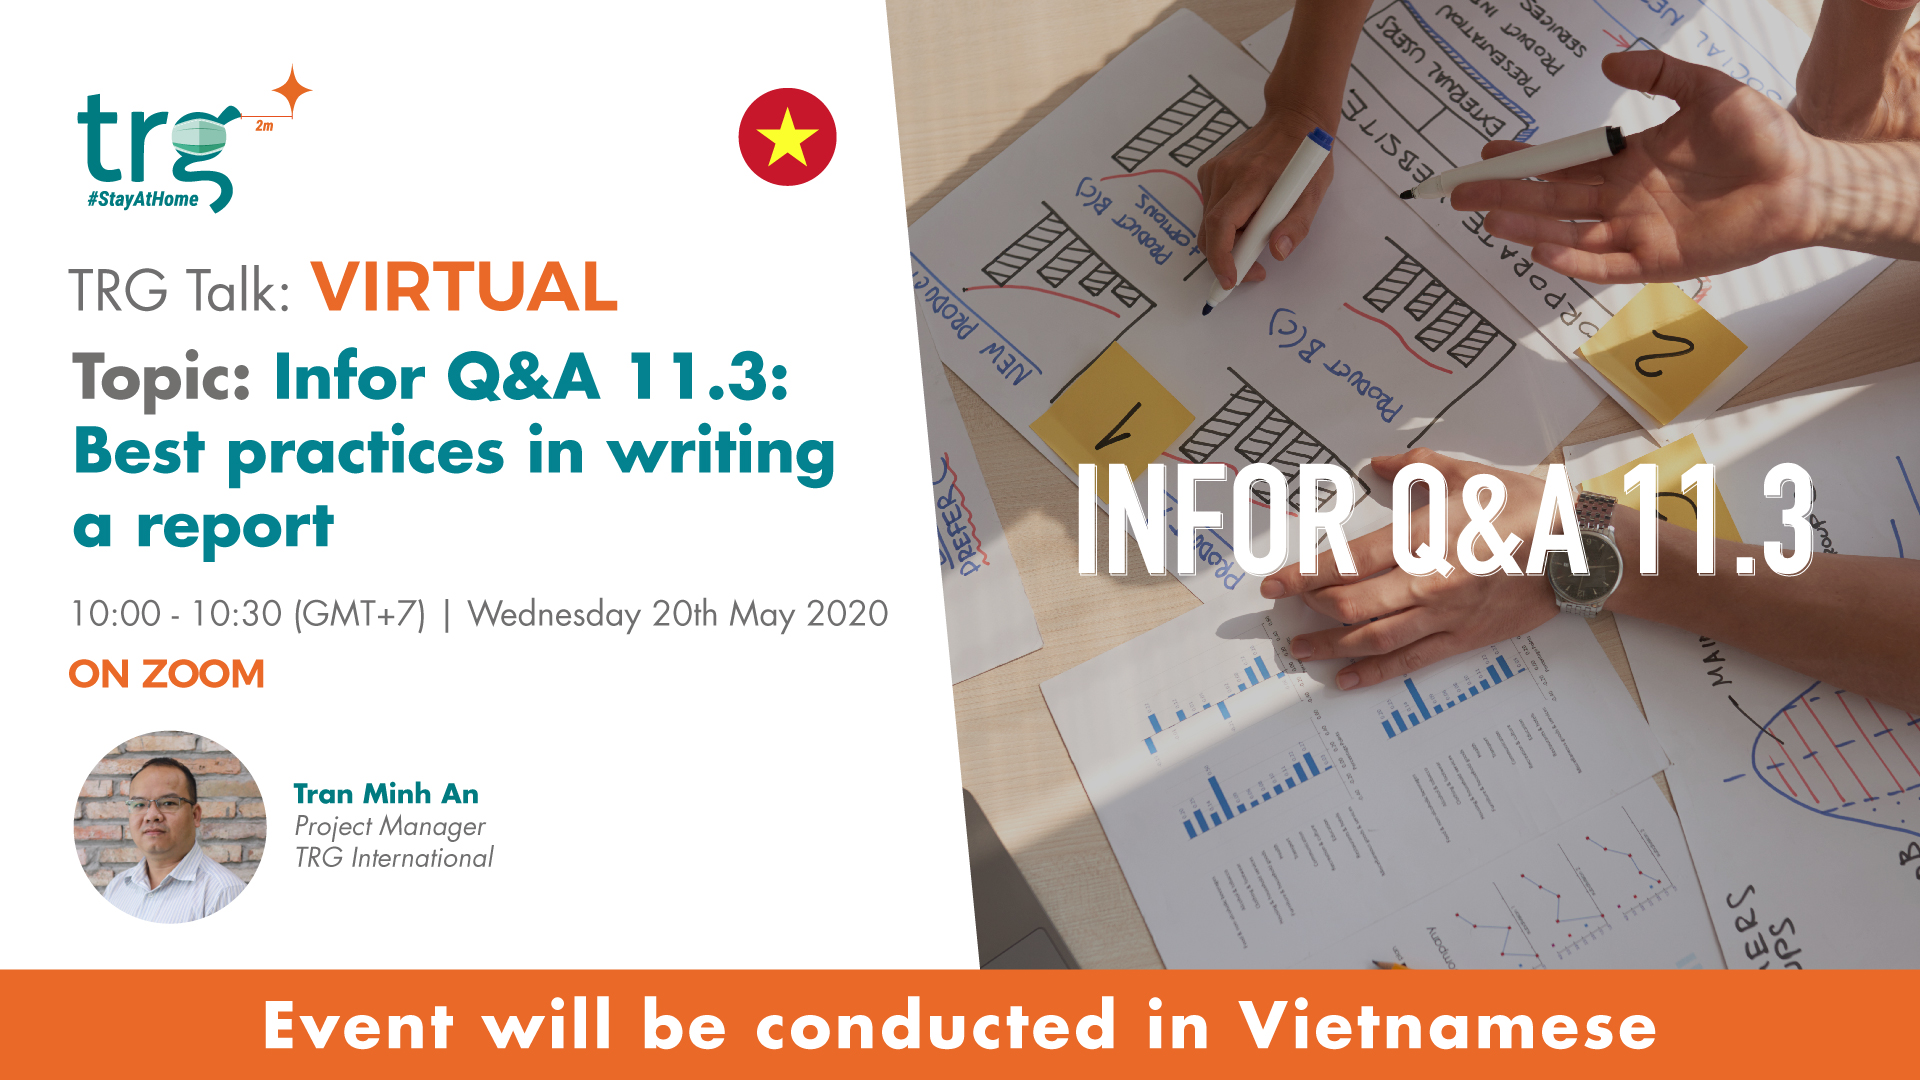 Infor Q&A 11.3: Best practices in writing a report 1